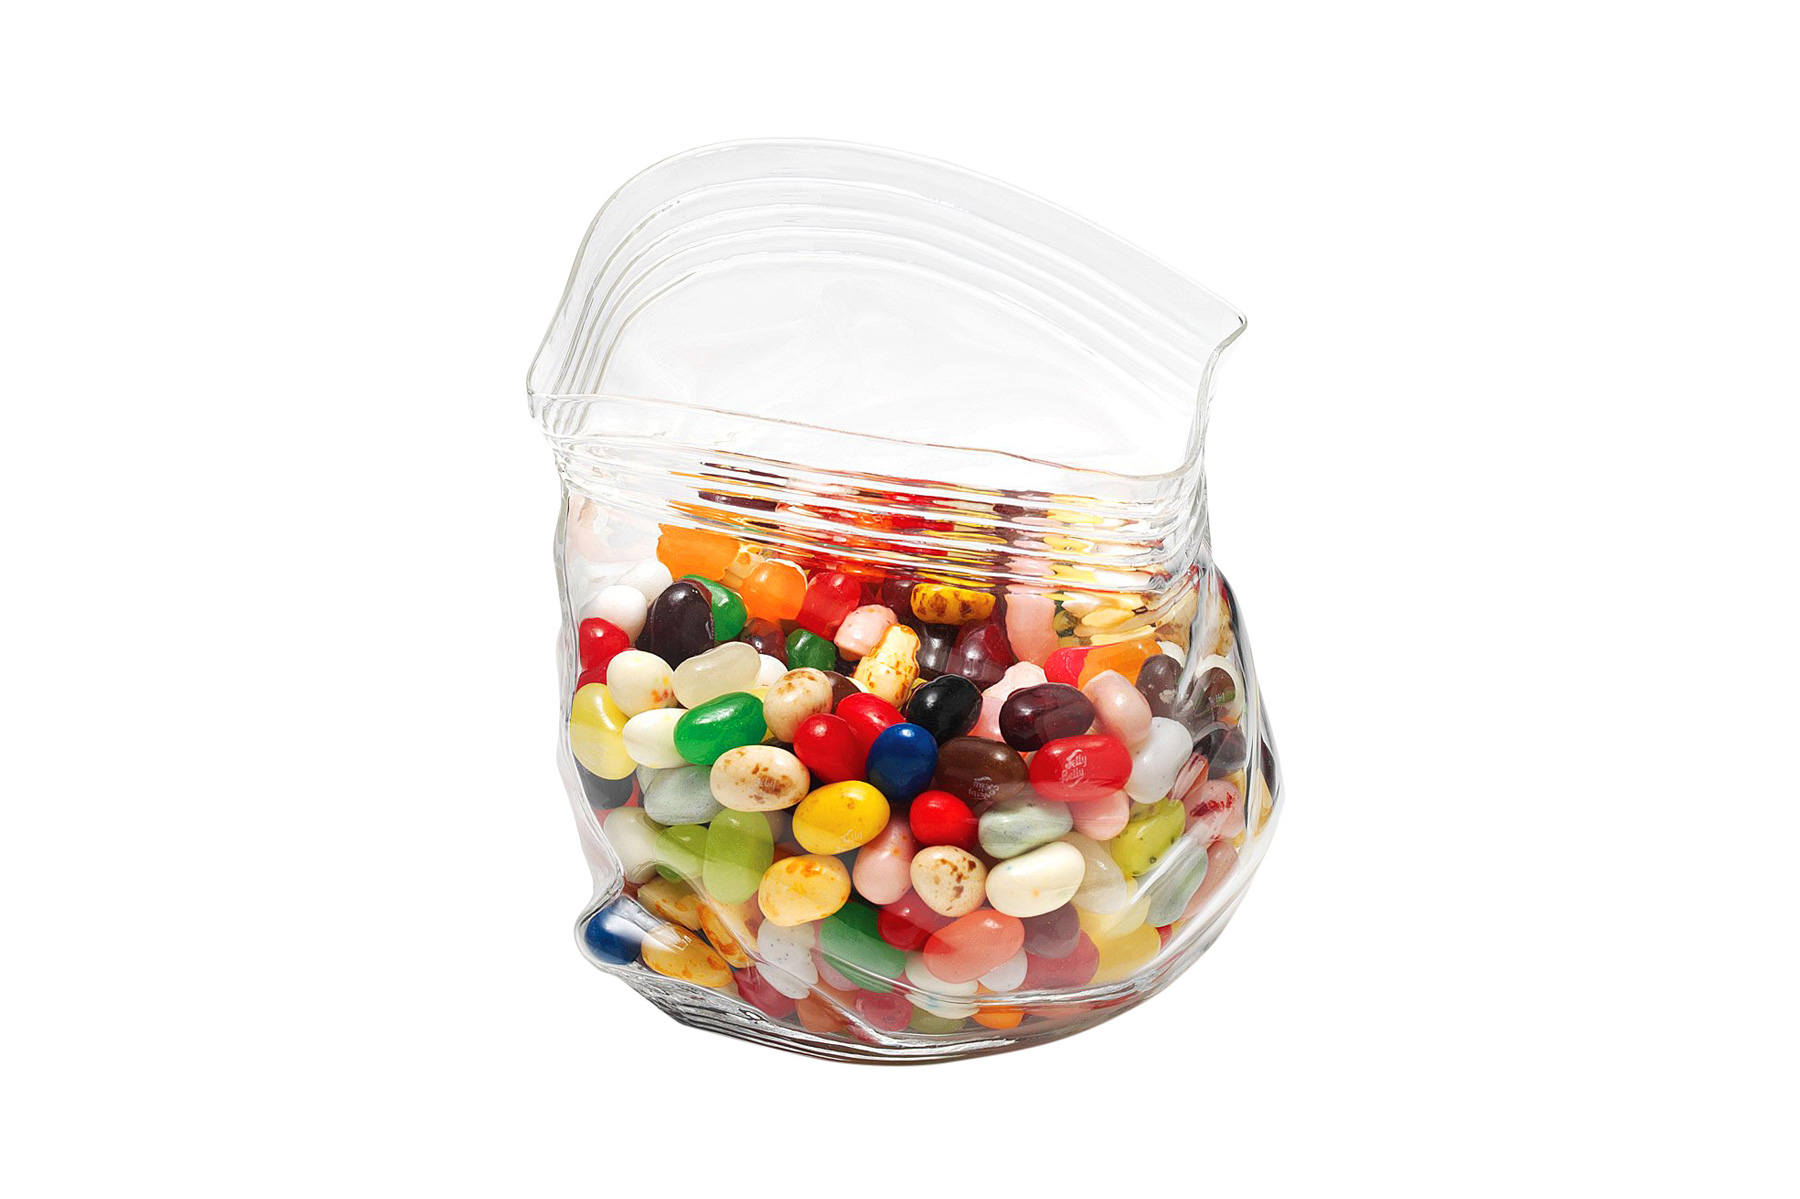 Easter Basket Ideas for Adults, Cheeky Storage Containers